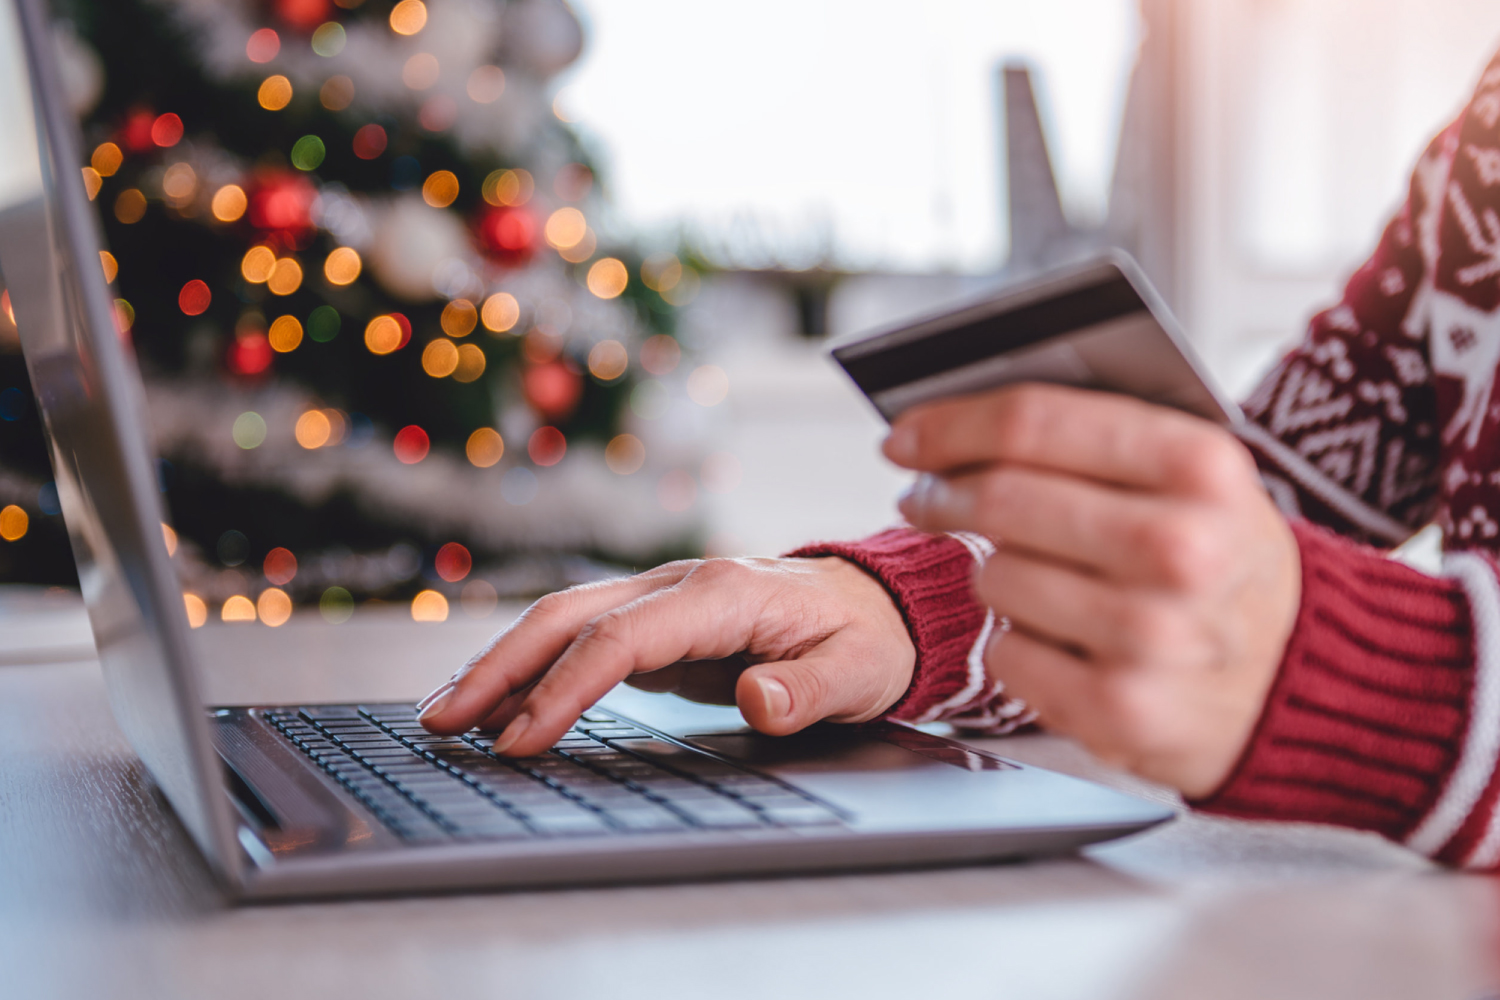 A Look Back at Customer Service During the 2019 Holiday Season